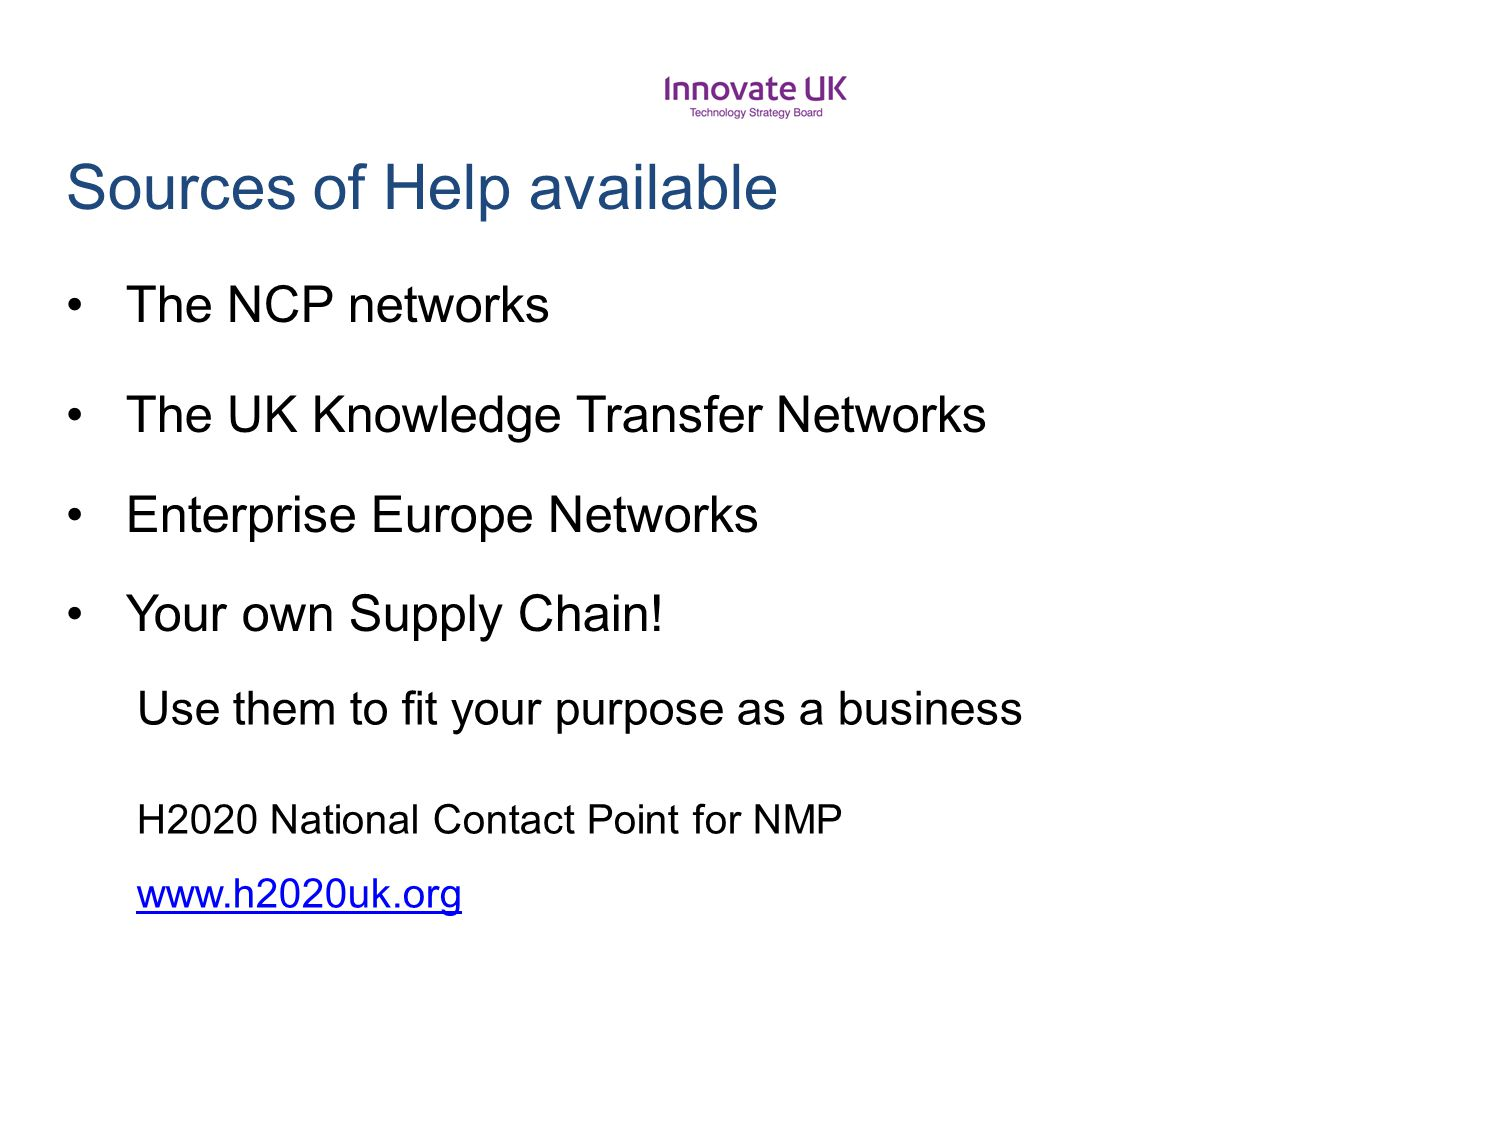 Use them to fit your purpose as a business H2020 National Contact Point for NMP www.h2020uk.org Sources of Help available The NCP networks The UK Know